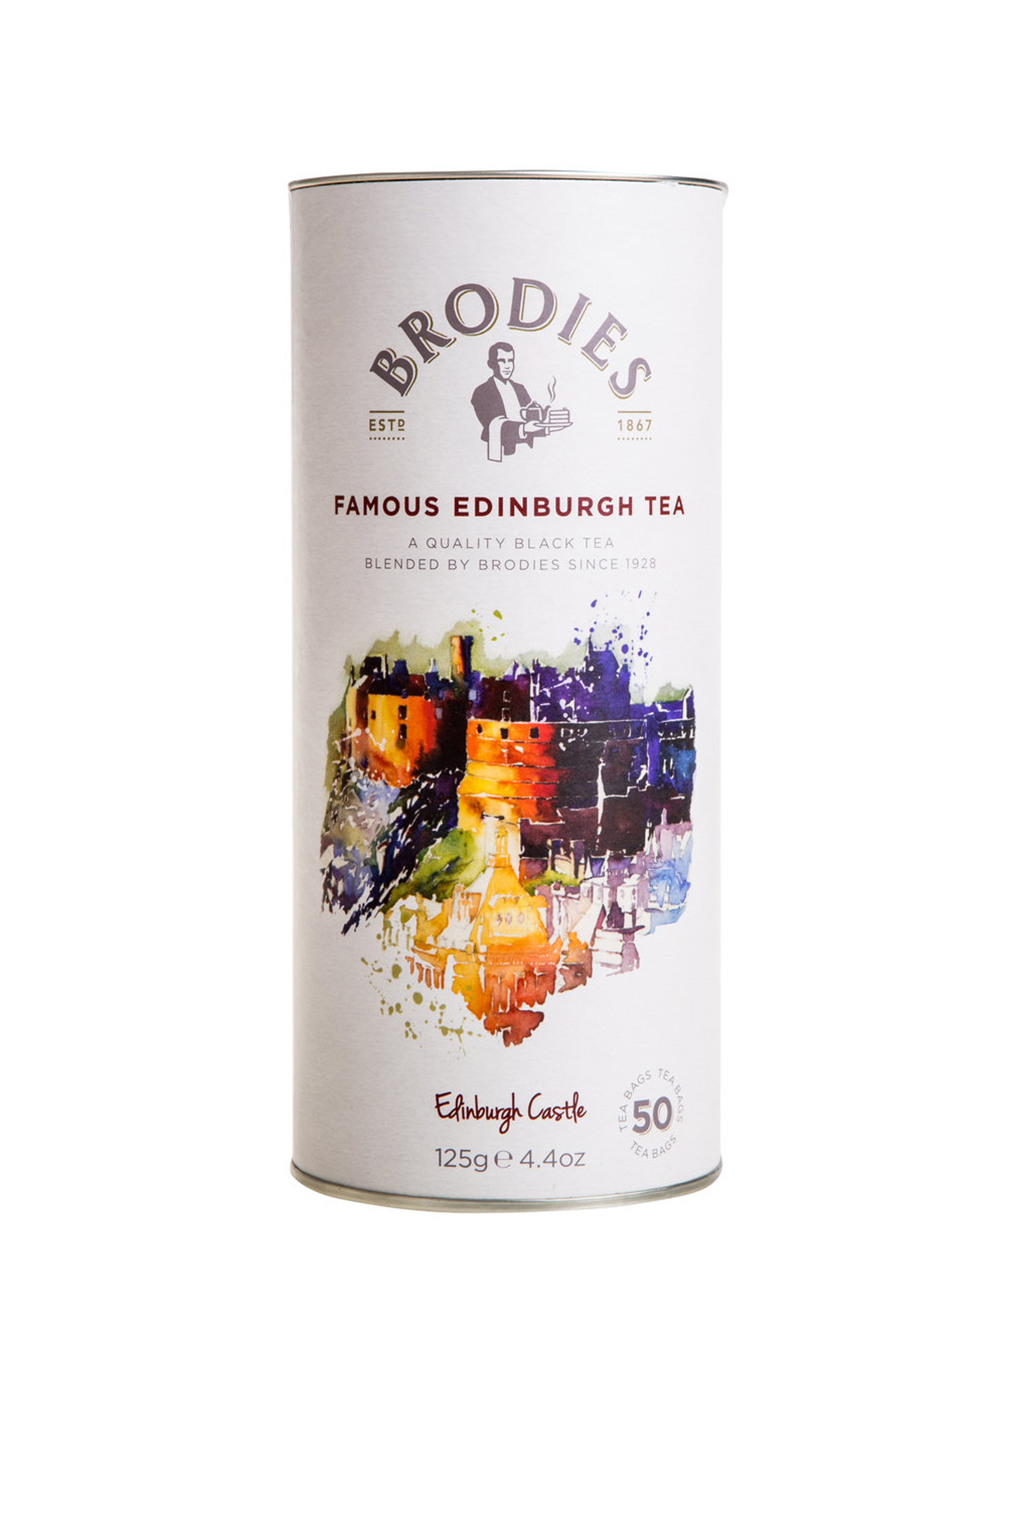 BRODIES - Famous Edinburgh Tea Gift Drum